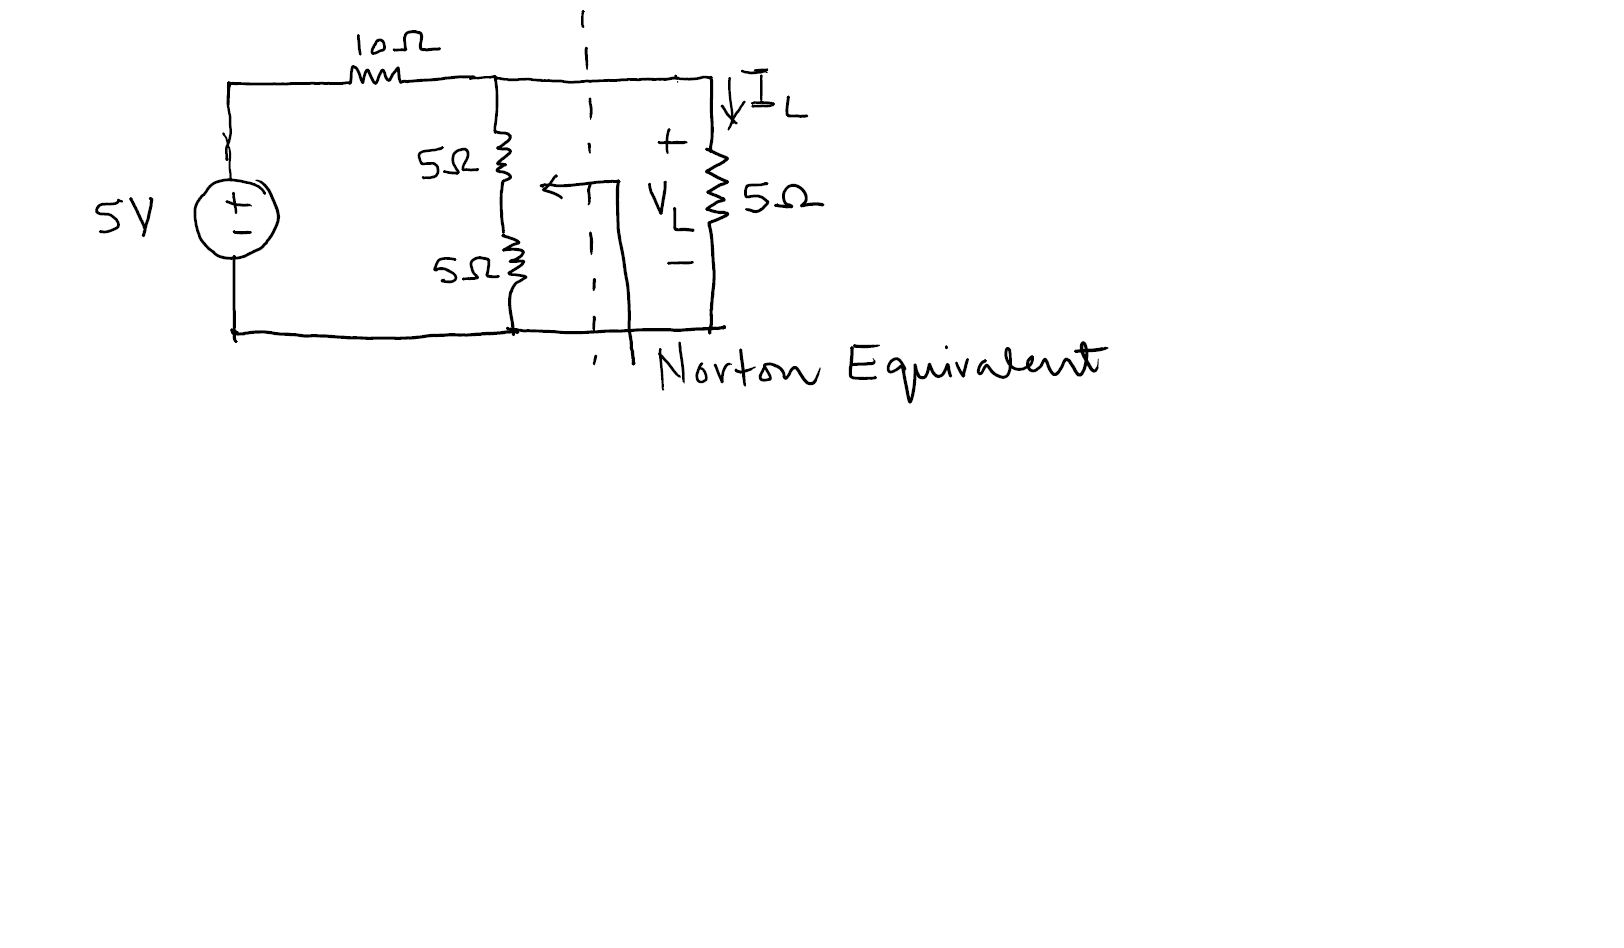 Determine the Norton equivalent as indicated in th